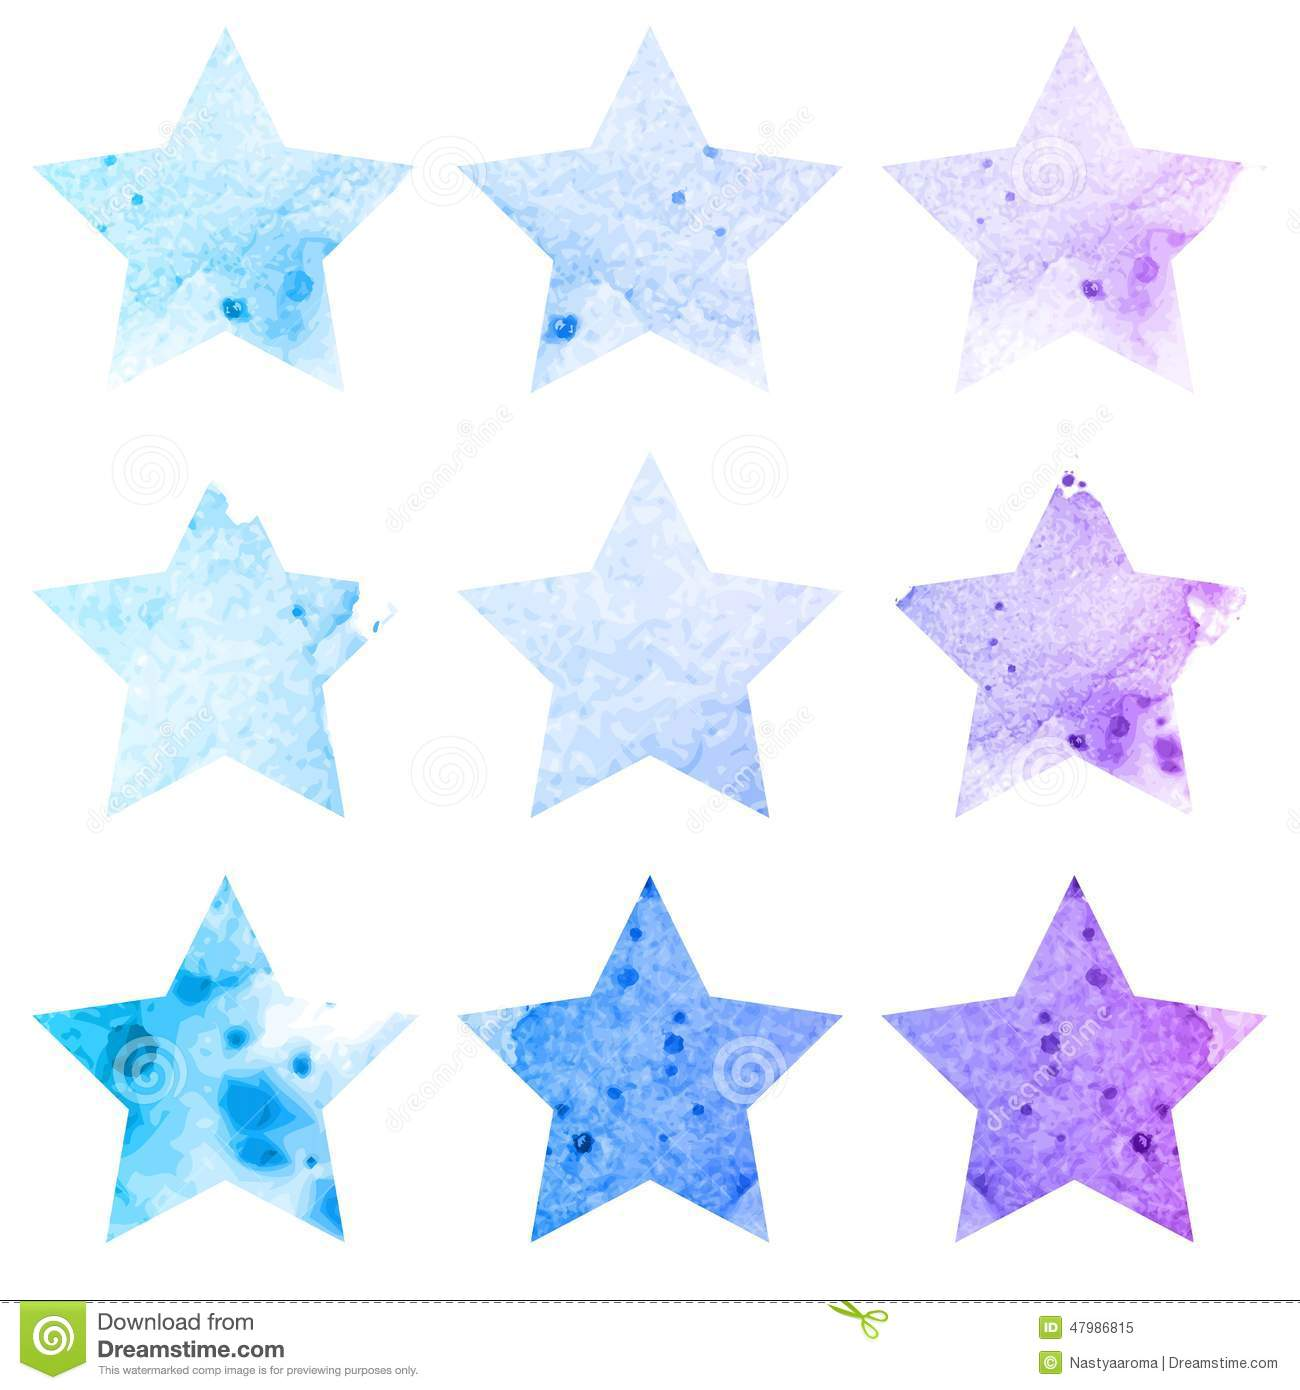 Shining watercolor stars icon set. Vector